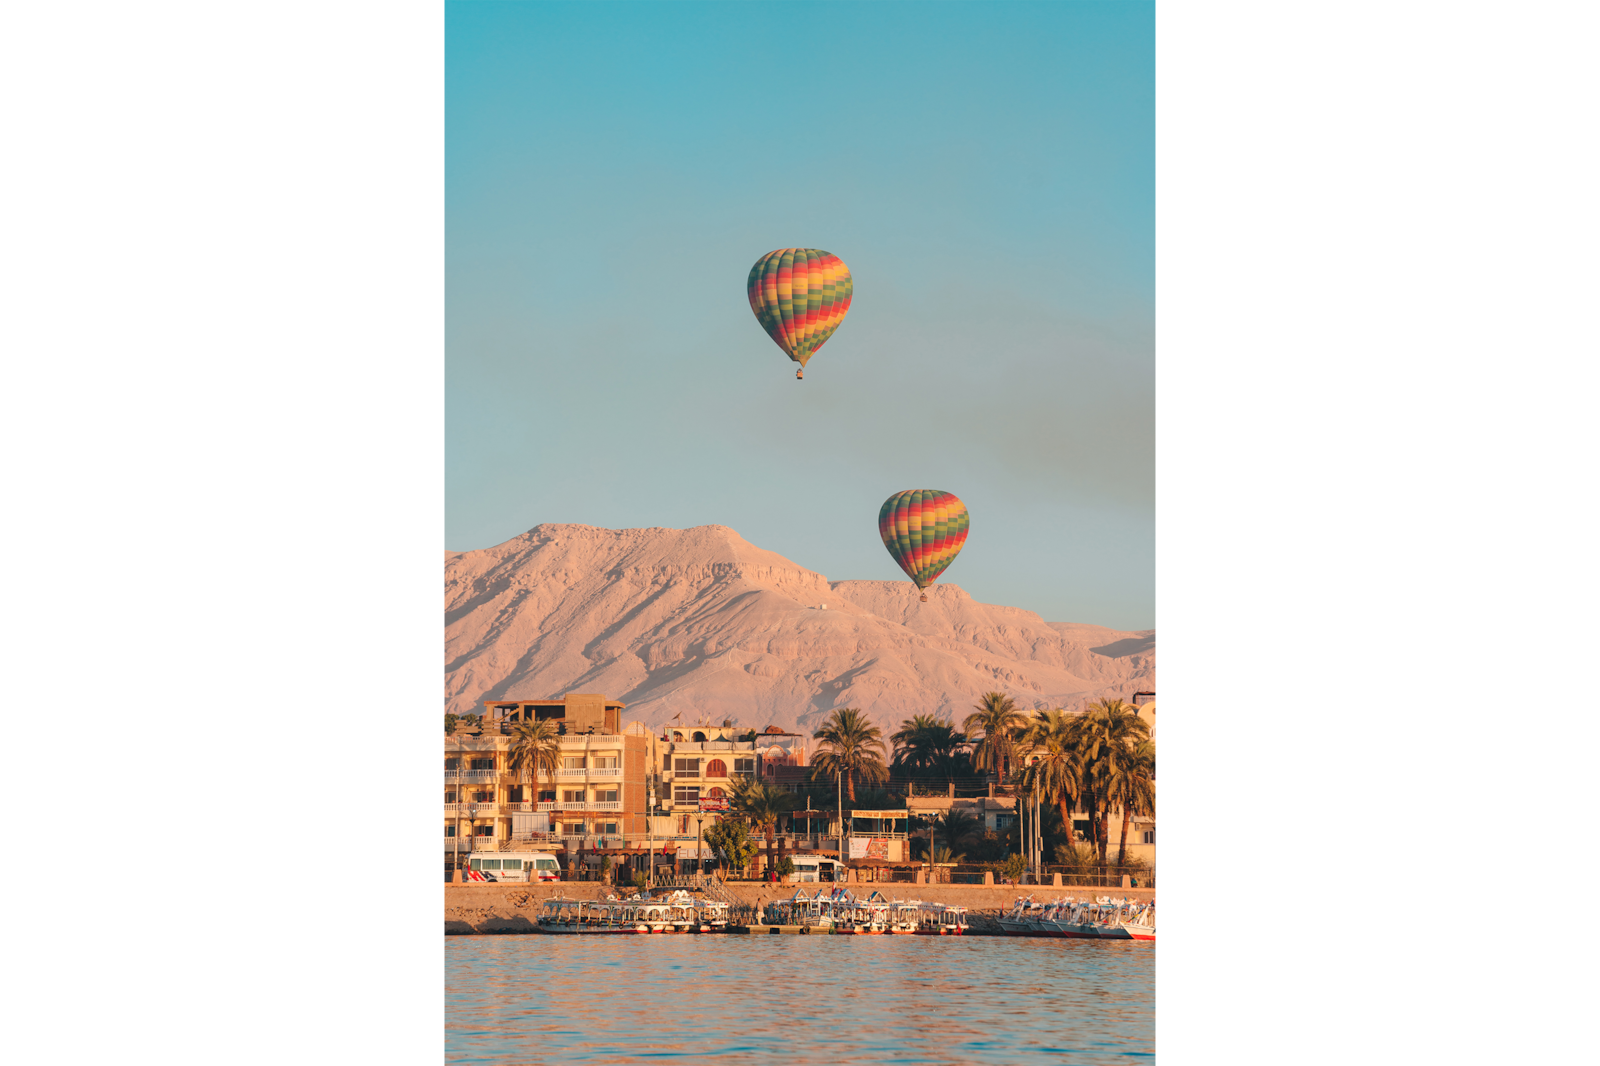 hot air balloon over coastal town alpha 7RIII